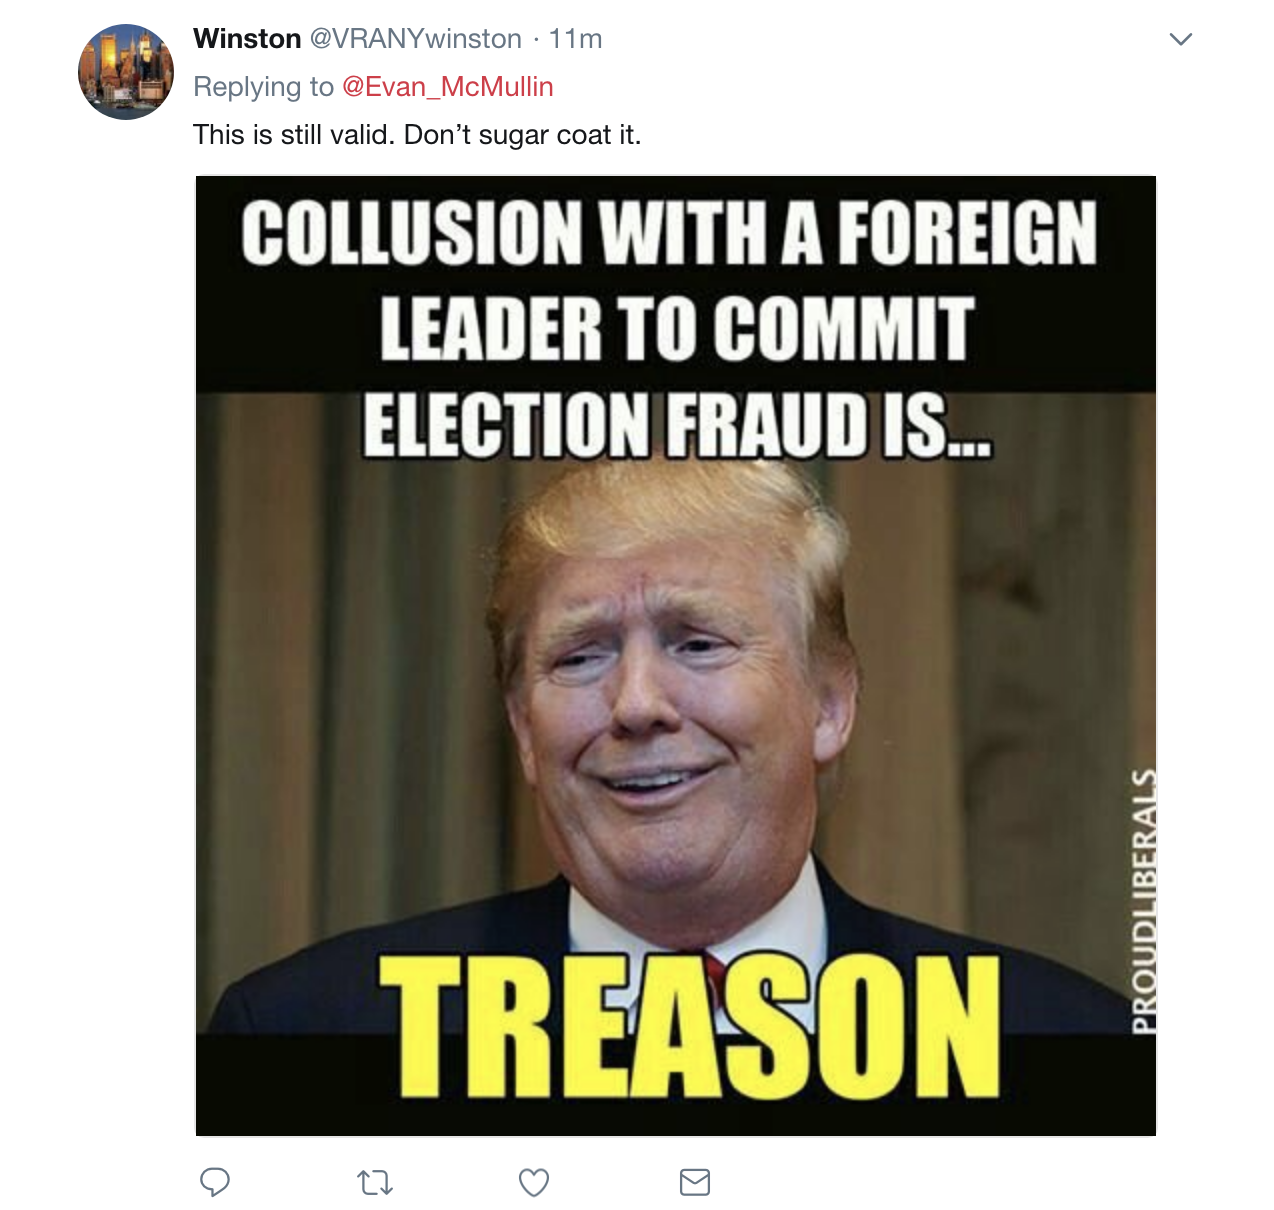 Screen-Shot-2018-02-19-at-2.19.54-PM Senator Al Franken Was Tricked Out Of Office By Foreign Conservative Bots Corruption Donald Trump Election 2016 Politics Social Media Top Stories